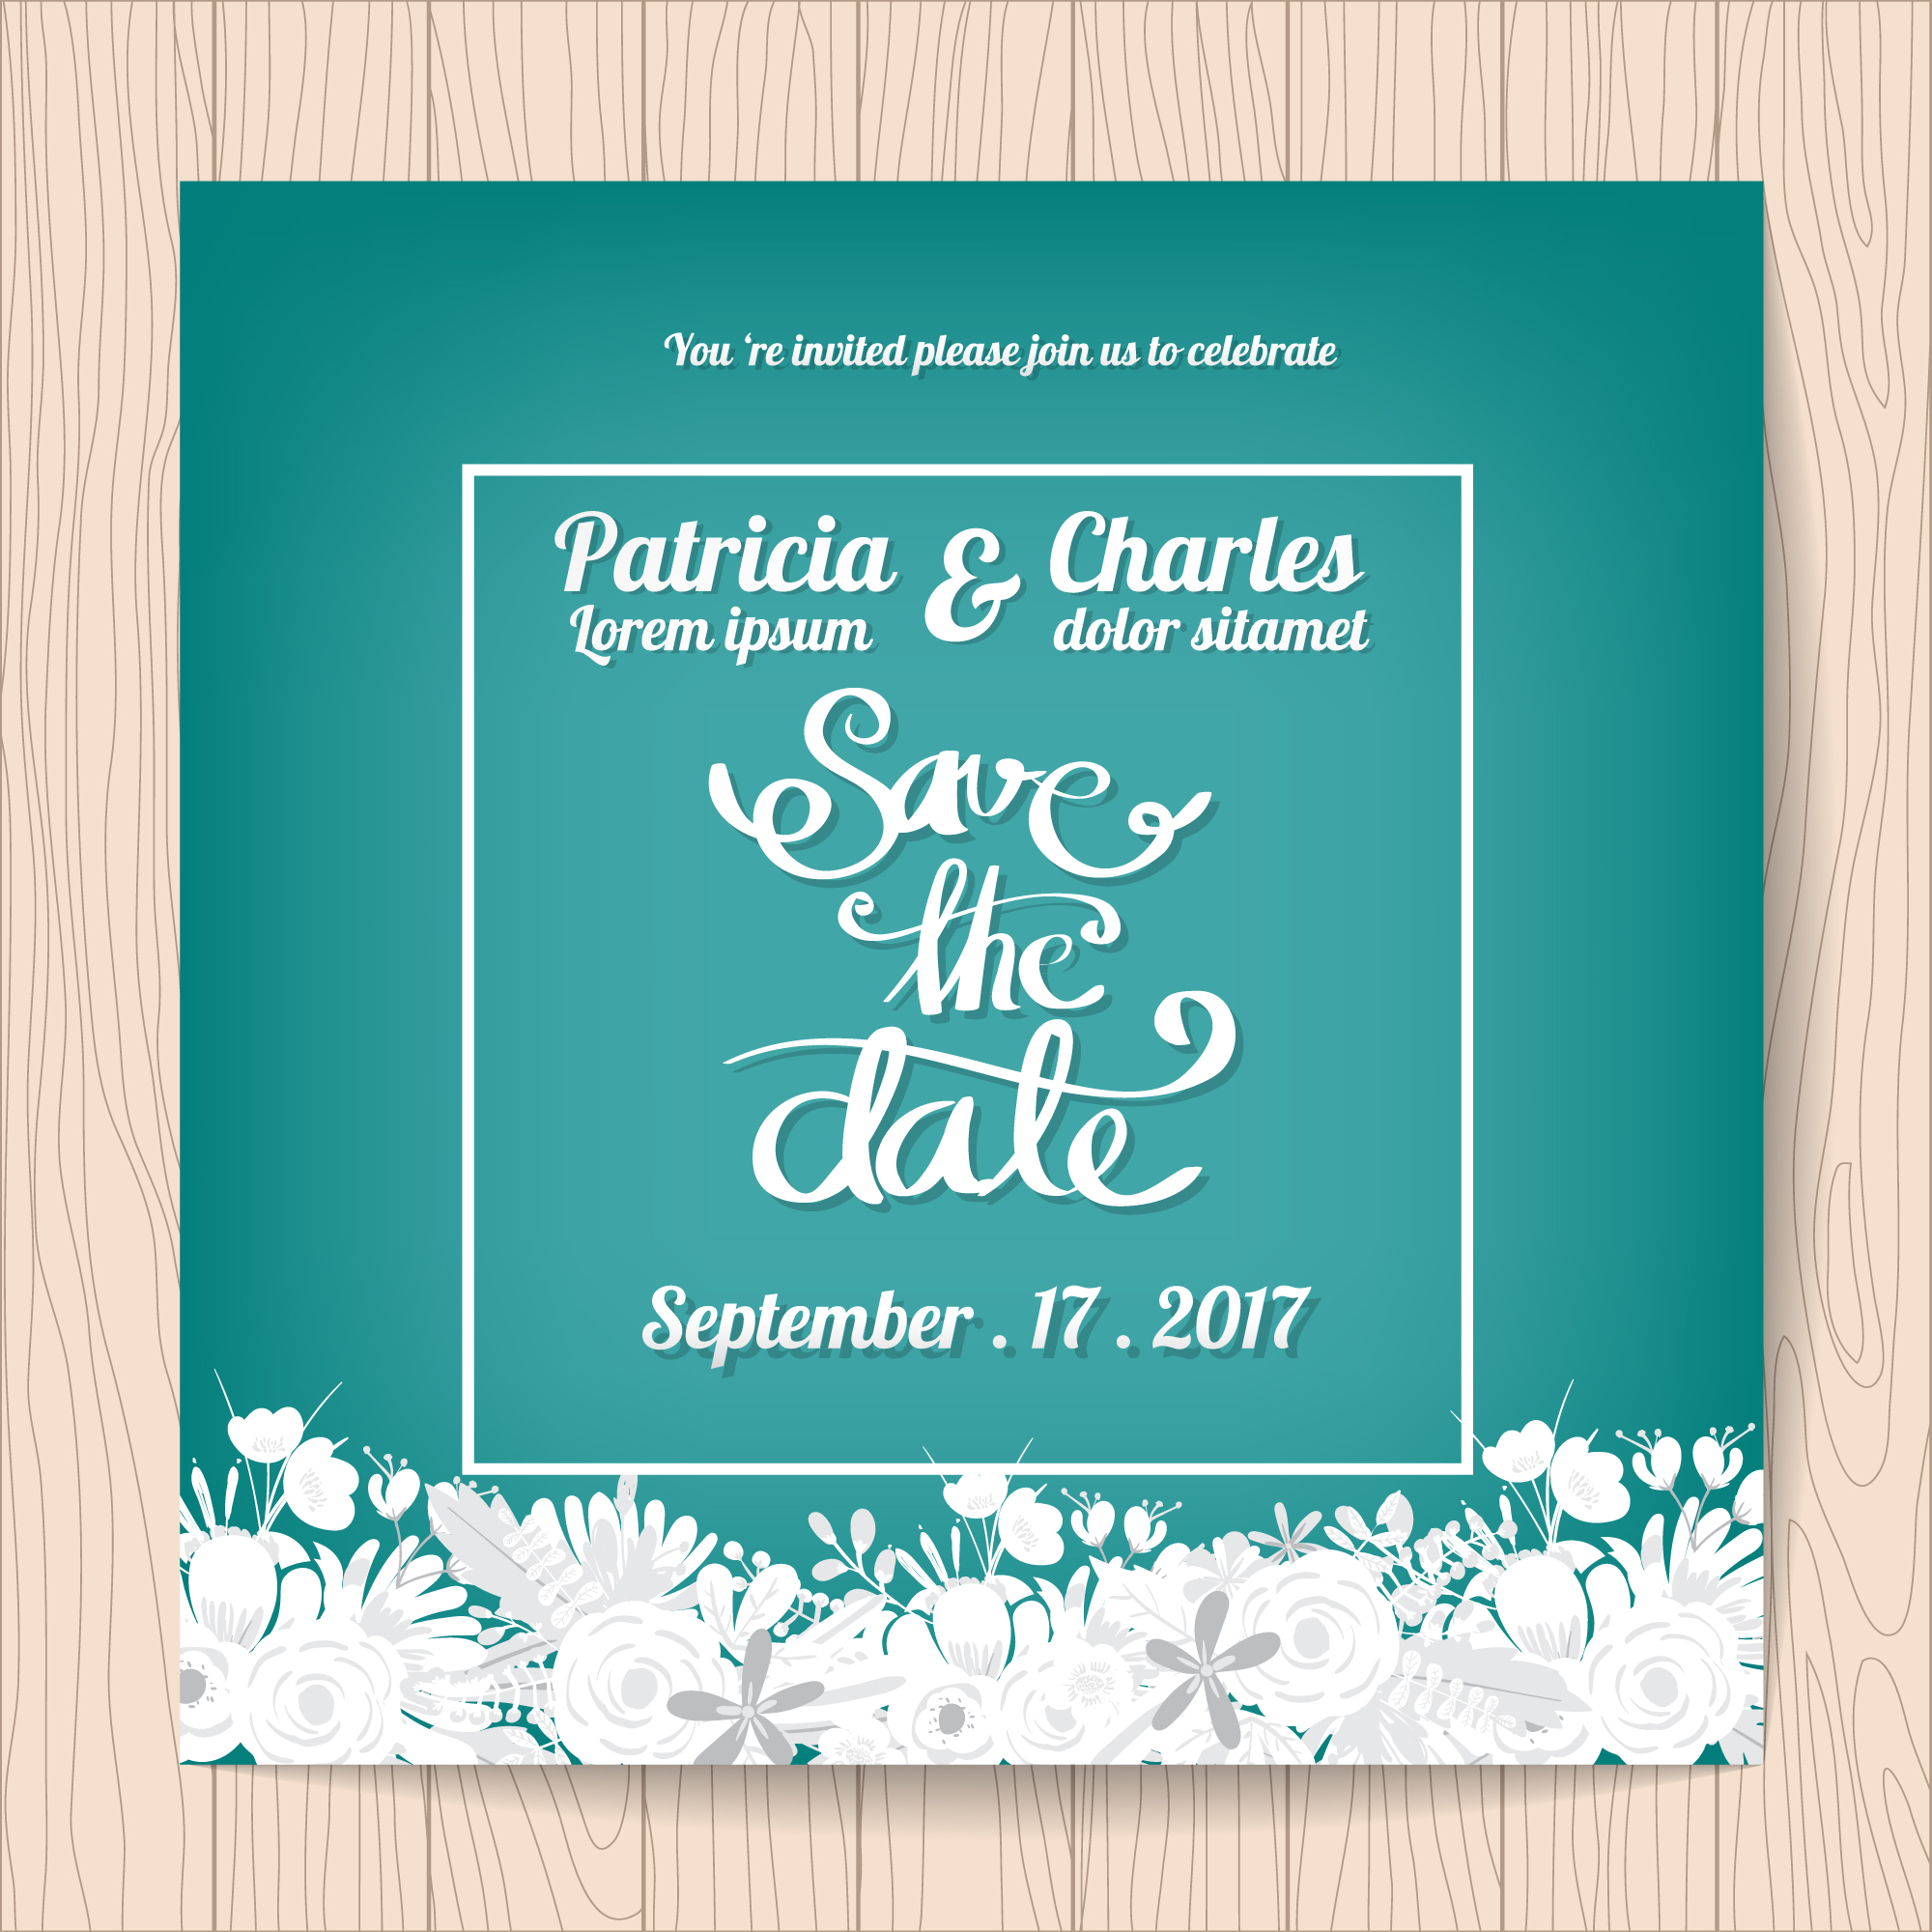 Wedding invitation with white flowers